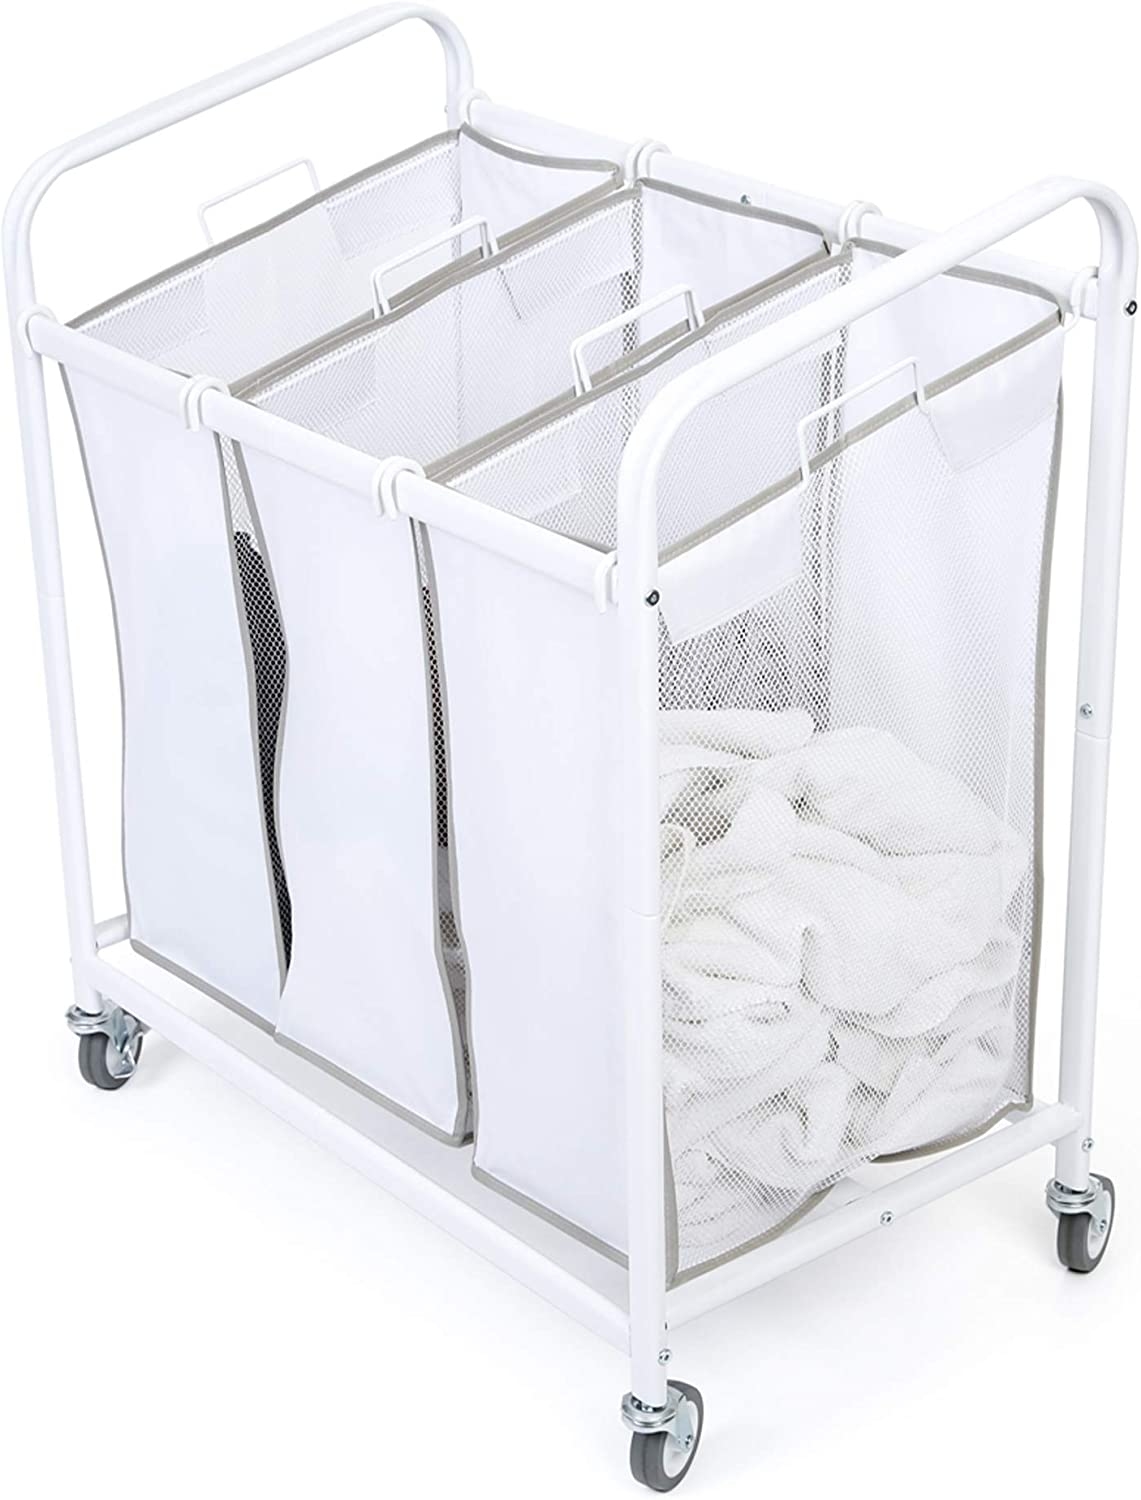 Smart Design Premium Rolling 3 Compartment Mesh Laundry Sorter Hamper w/Wheels & Handles - Steel Metal Frame - VentilAir Fabric Design - Clothes & Laundry - Home Organization (Holds 9 Loads) [White]